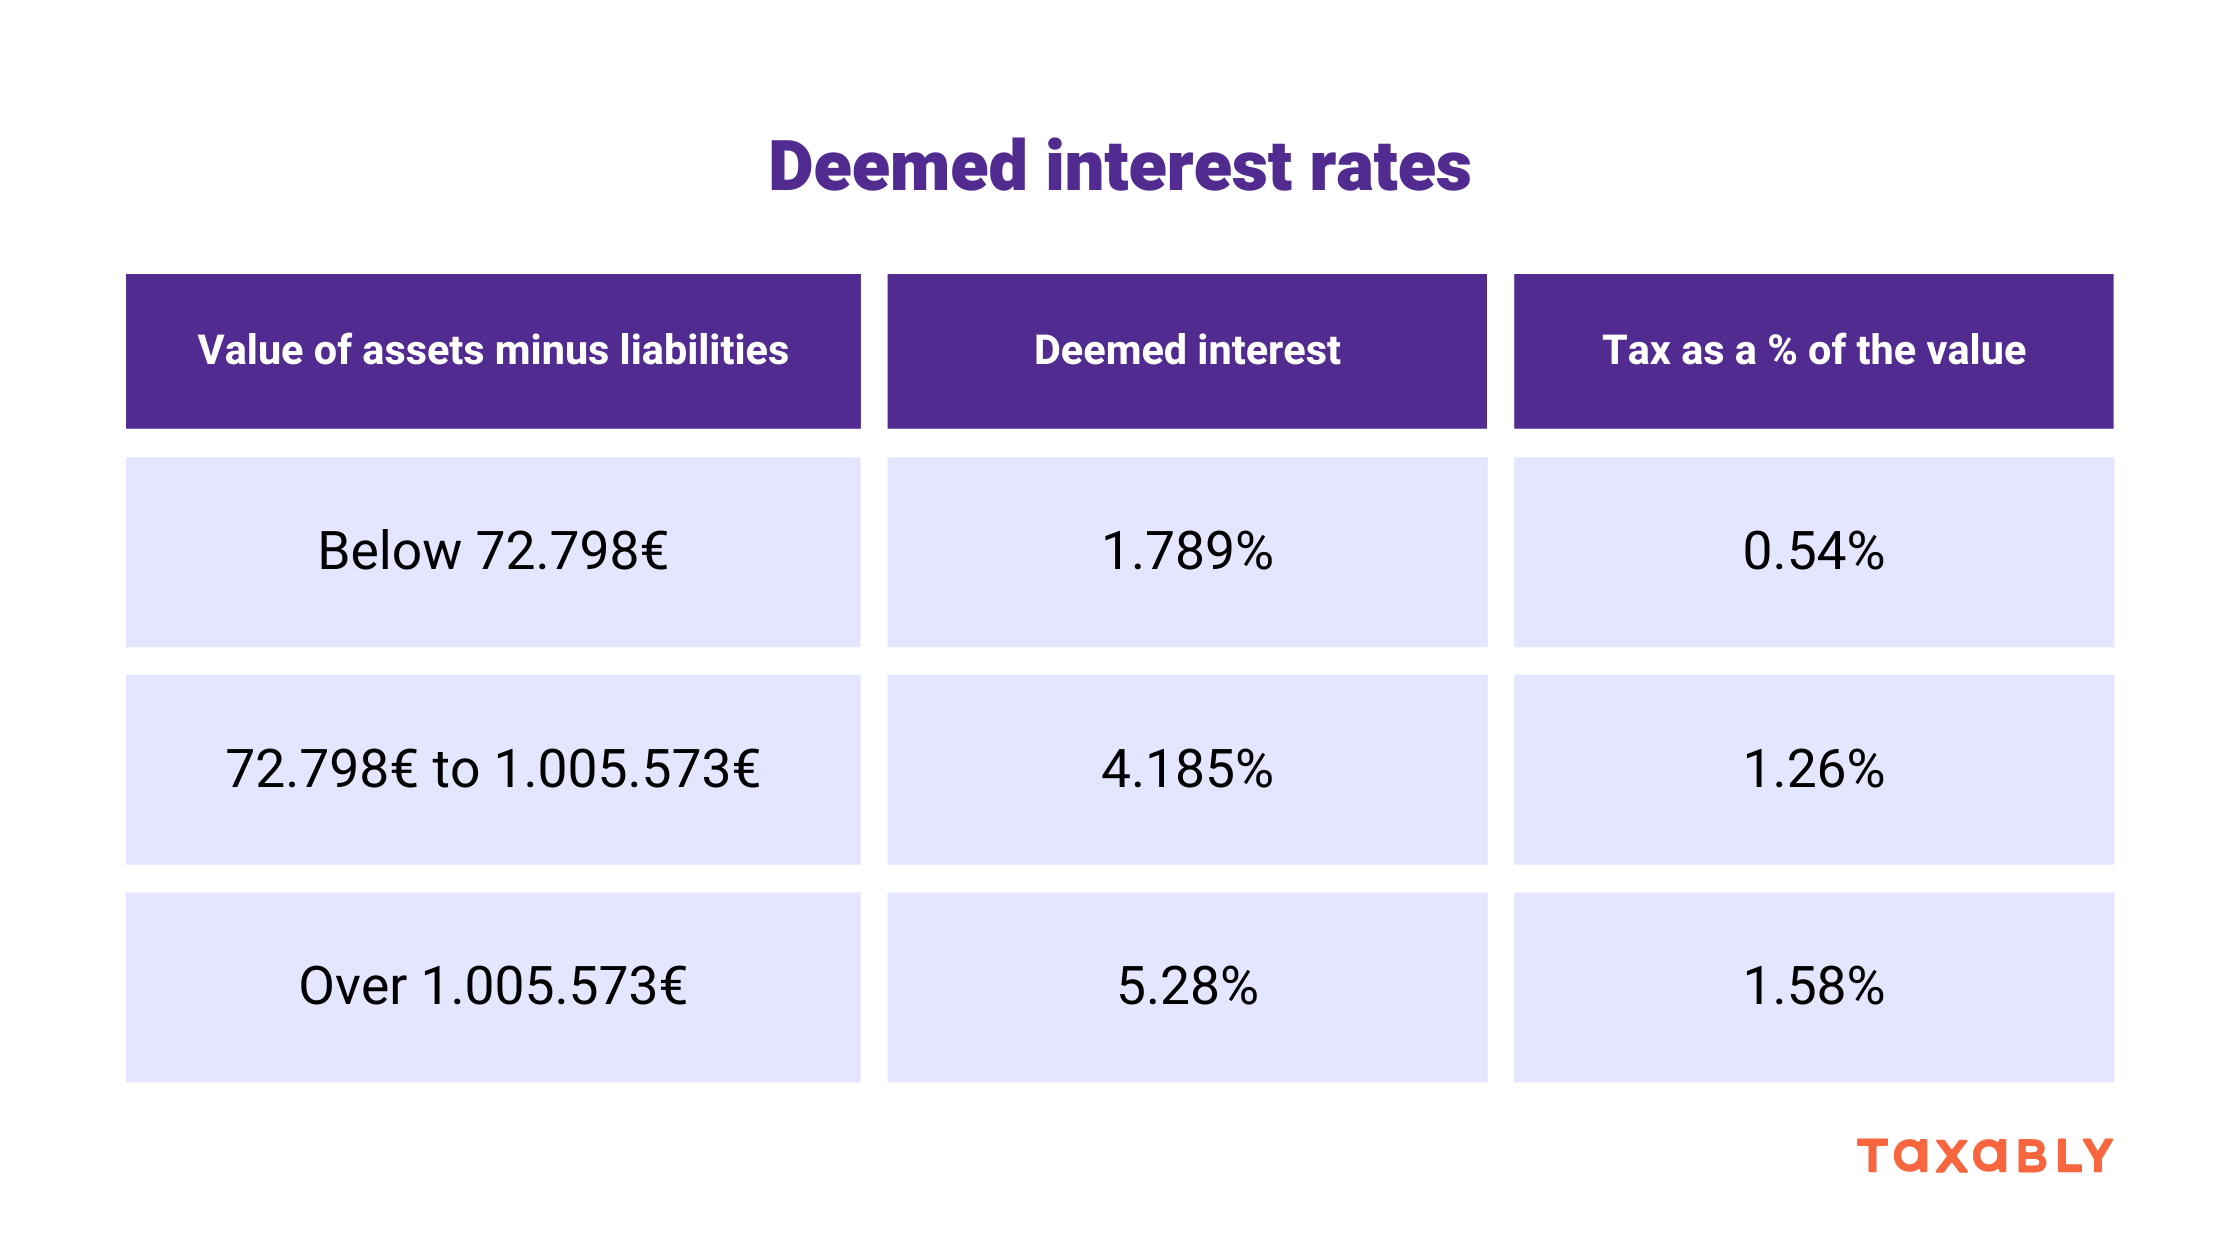 2020 Dutch Tax of crypto - Deemed interest rates